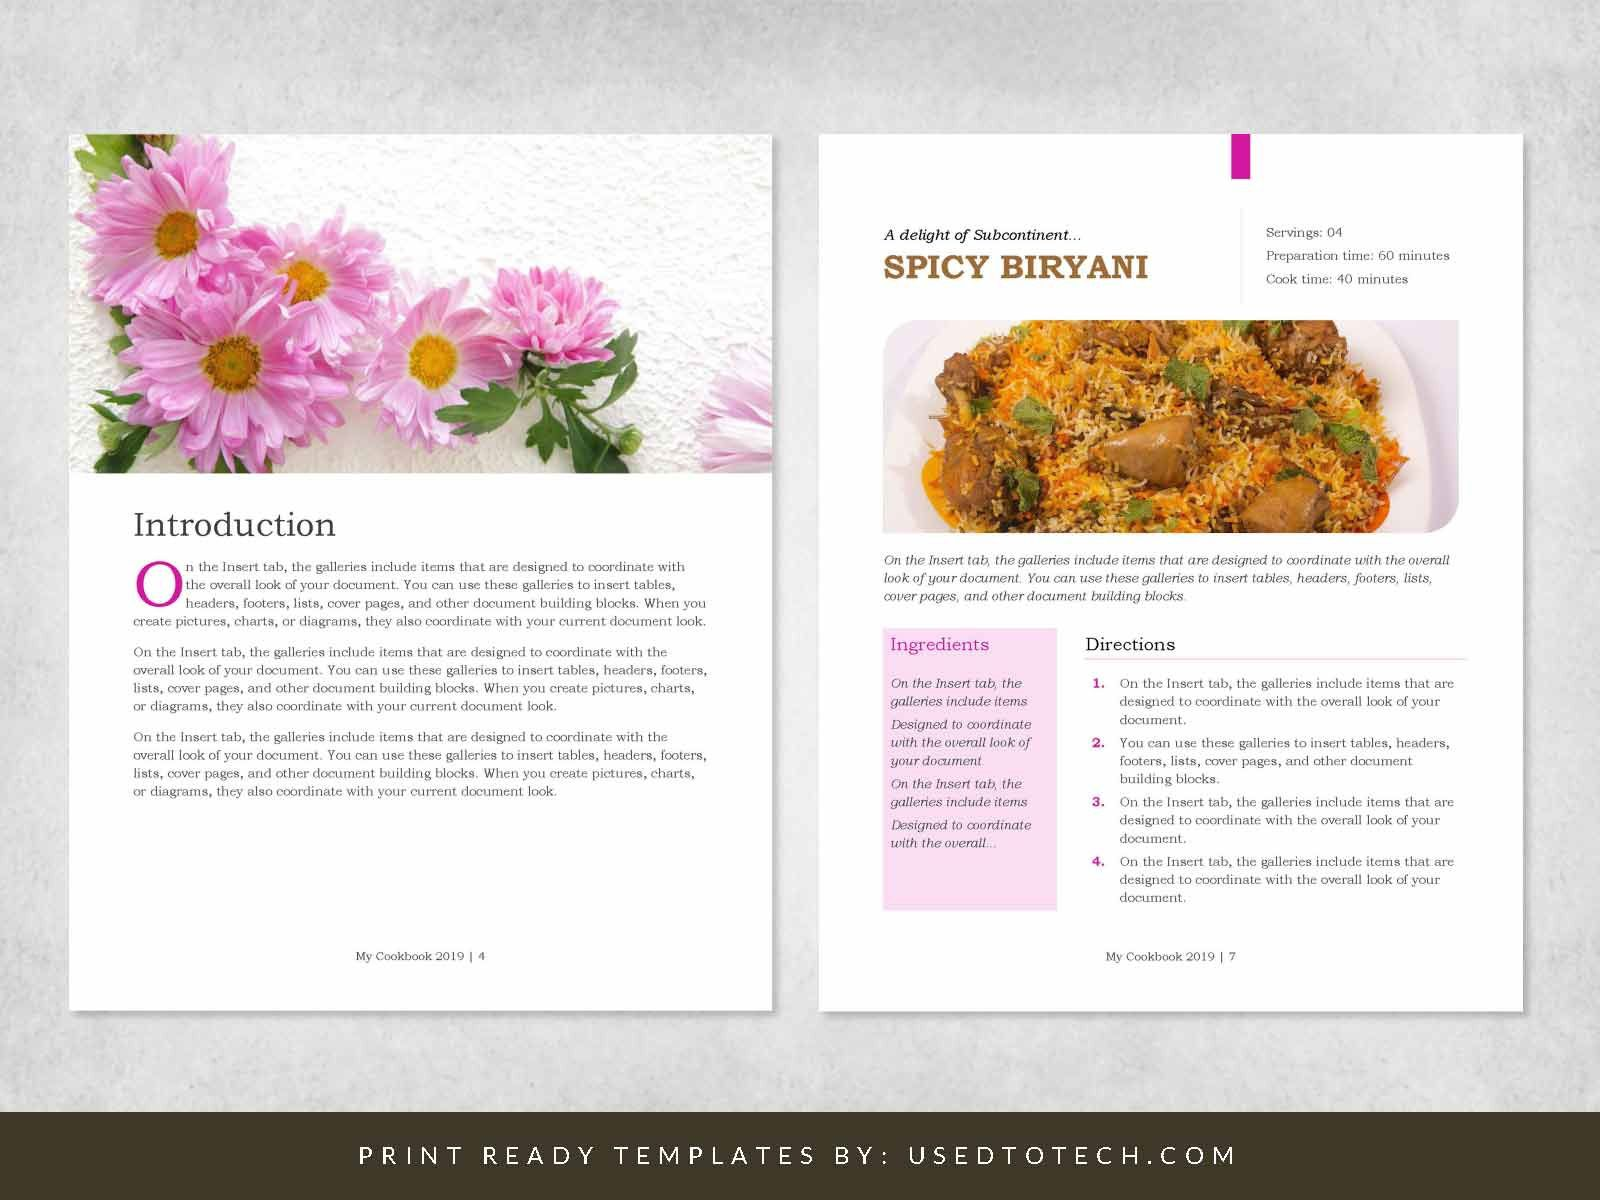 000 Wondrou Create Your Own Cookbook Free Template Inspiration Full